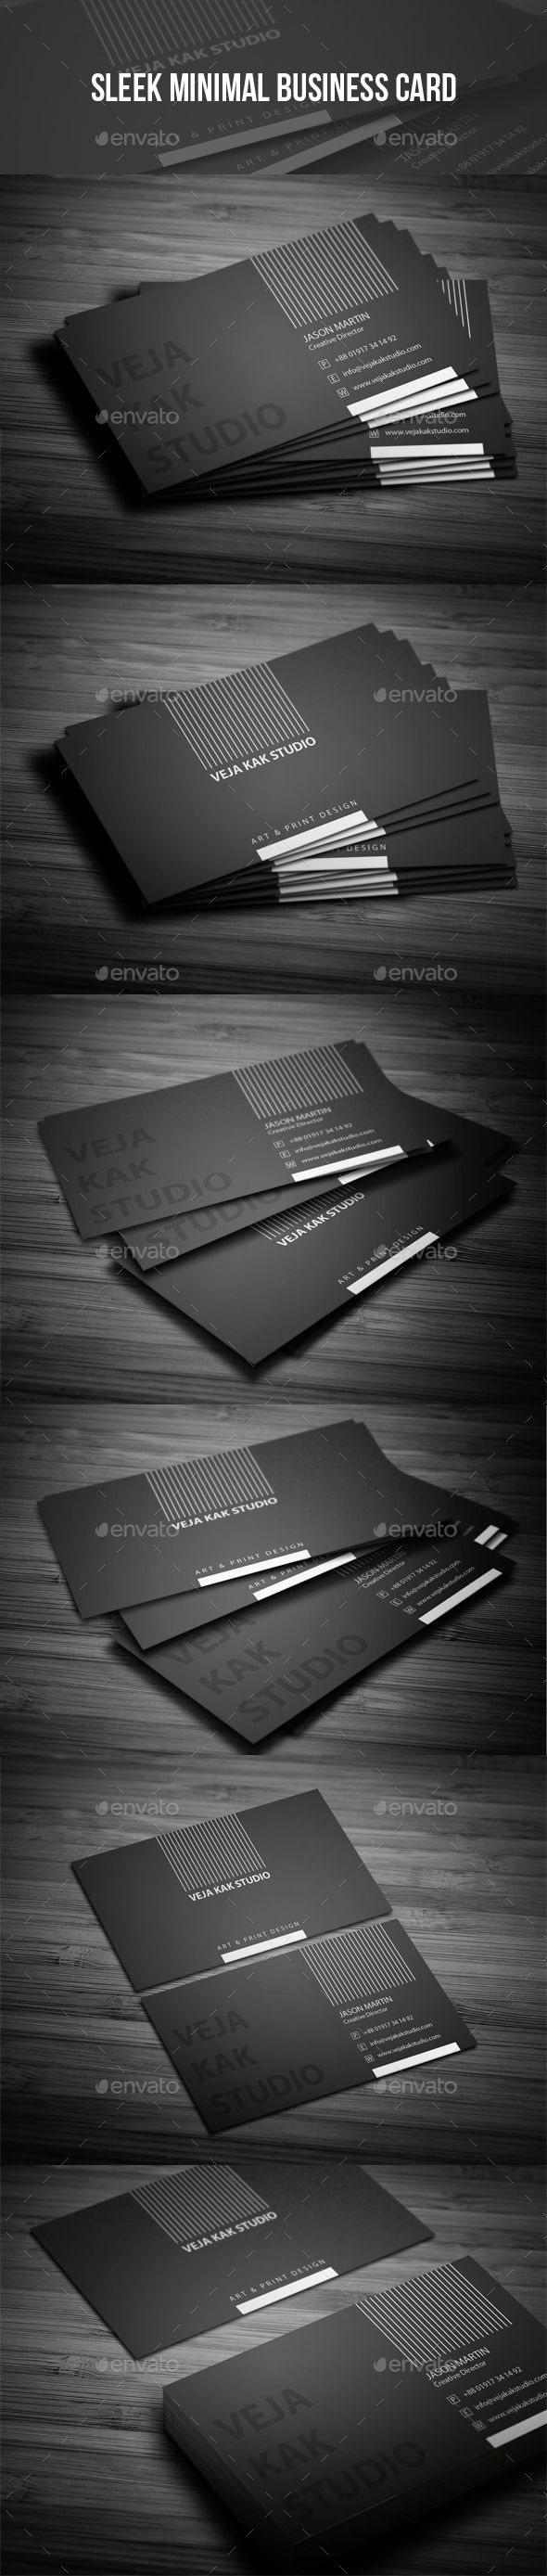 Sleek Minimal Business Card